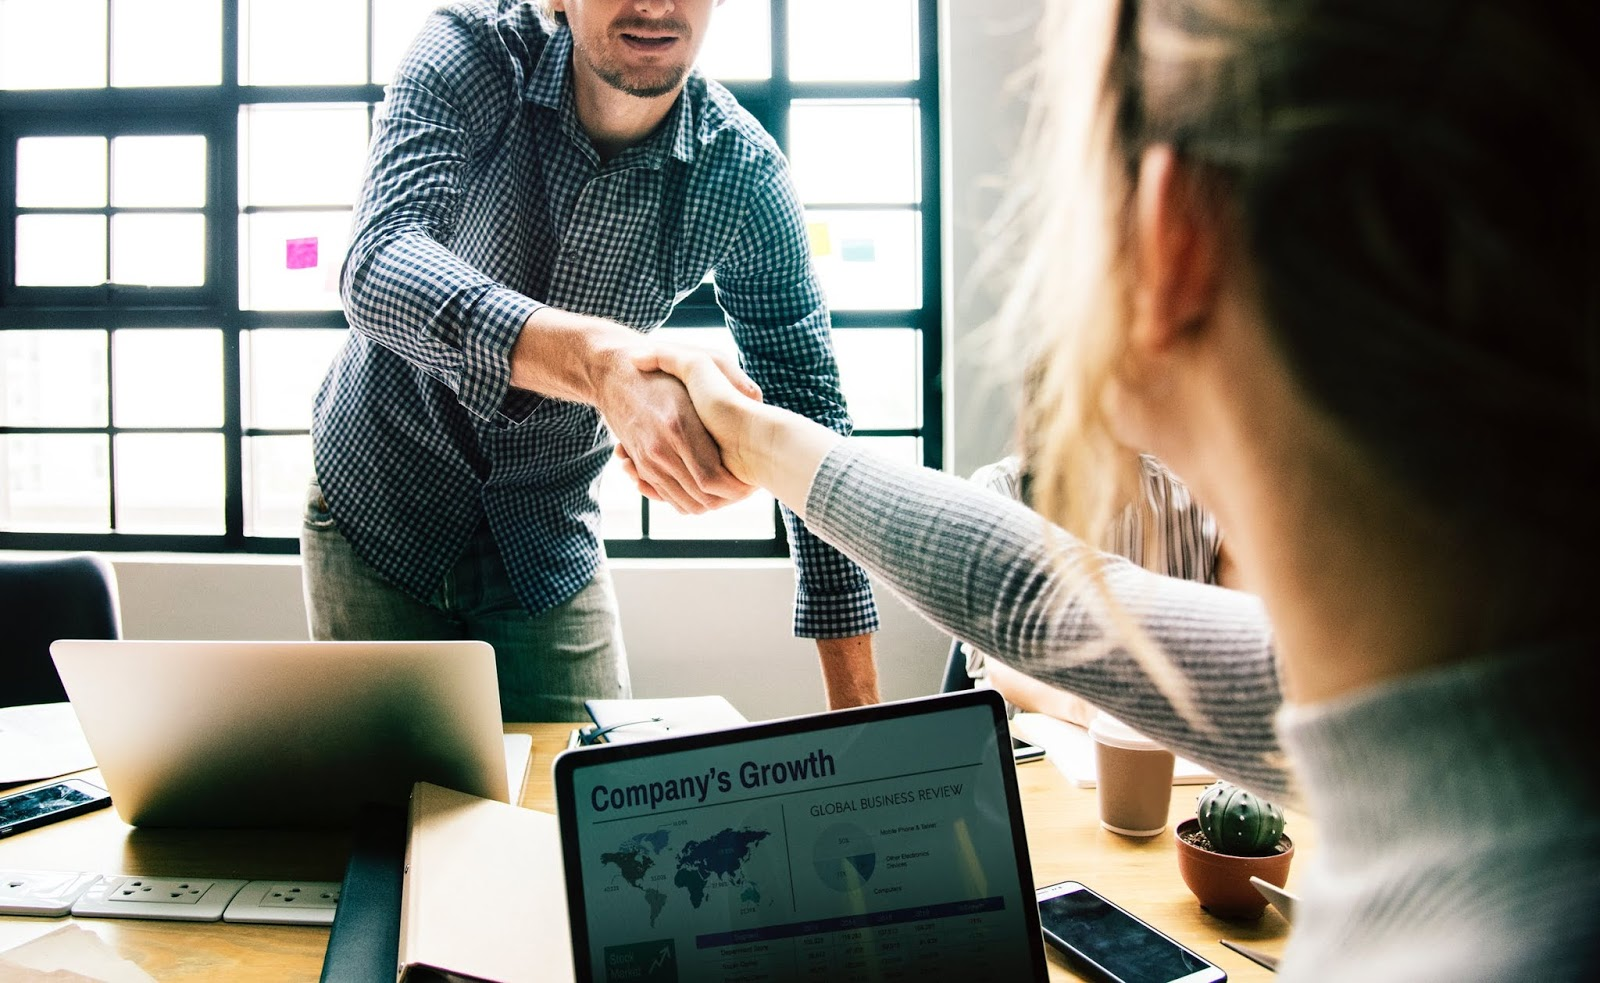 business man and woman shaking hands at an interview